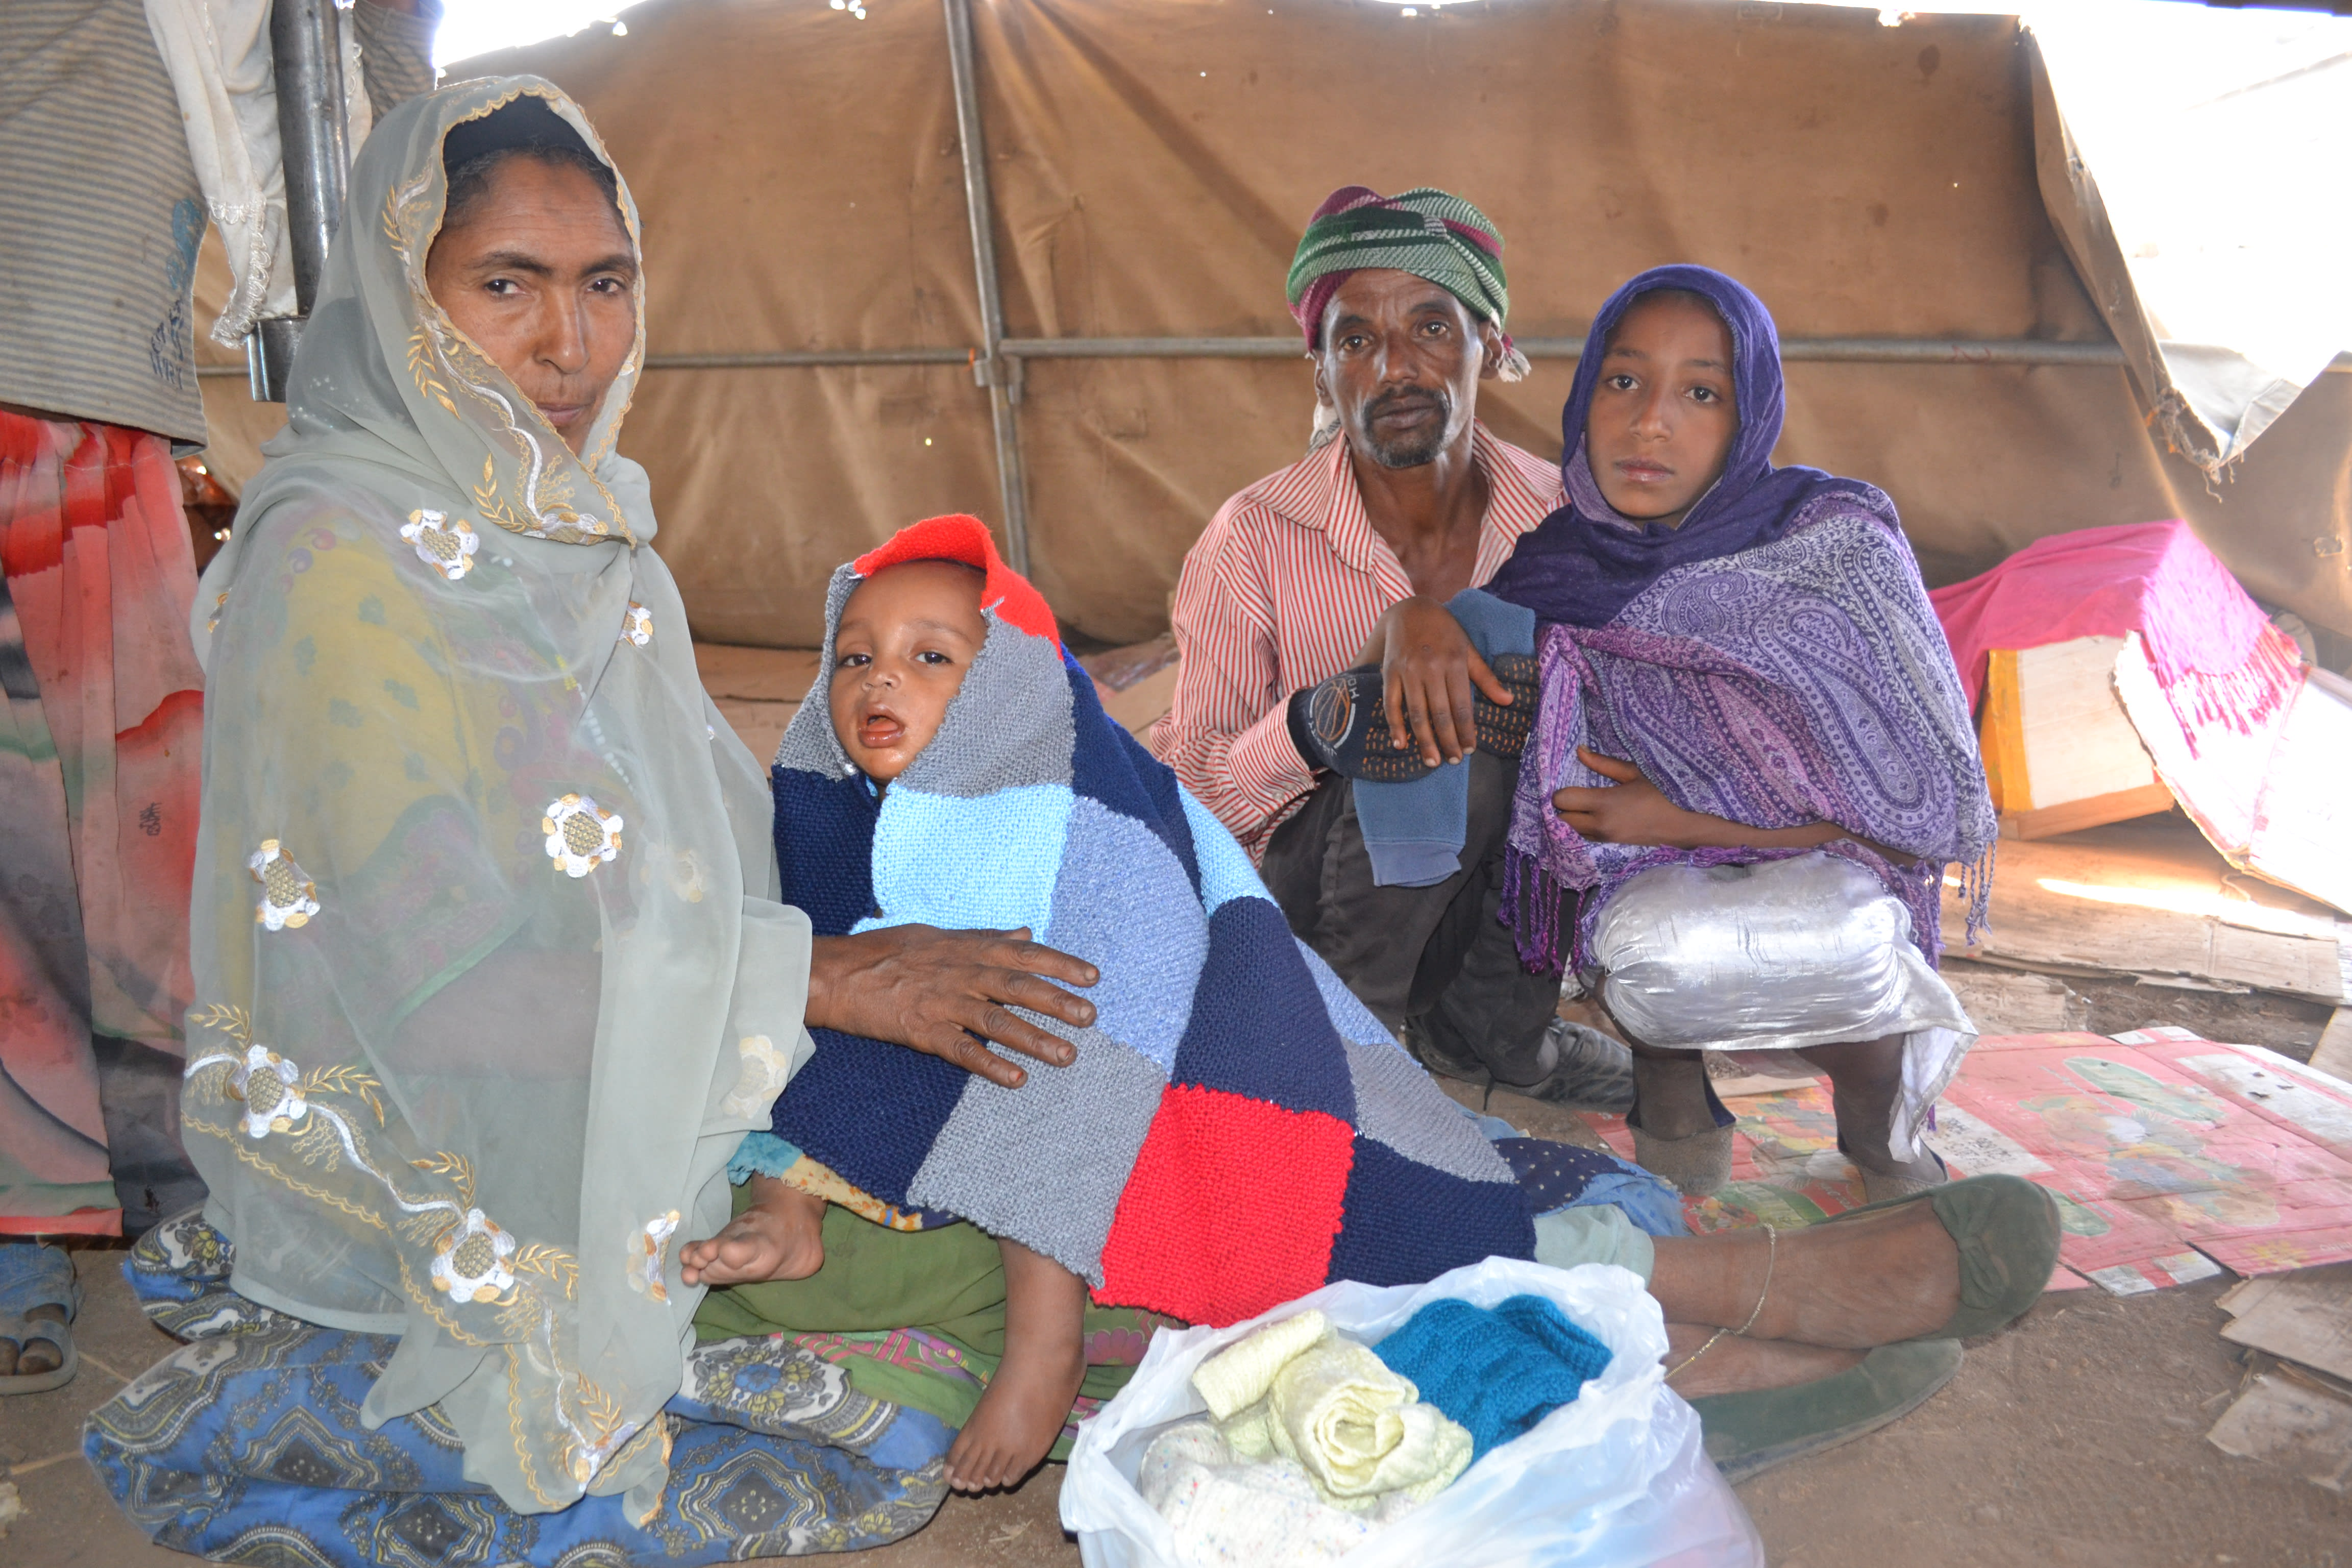 Seyda_wth_family_drought_displaced_refugee_internal_Ethiopia